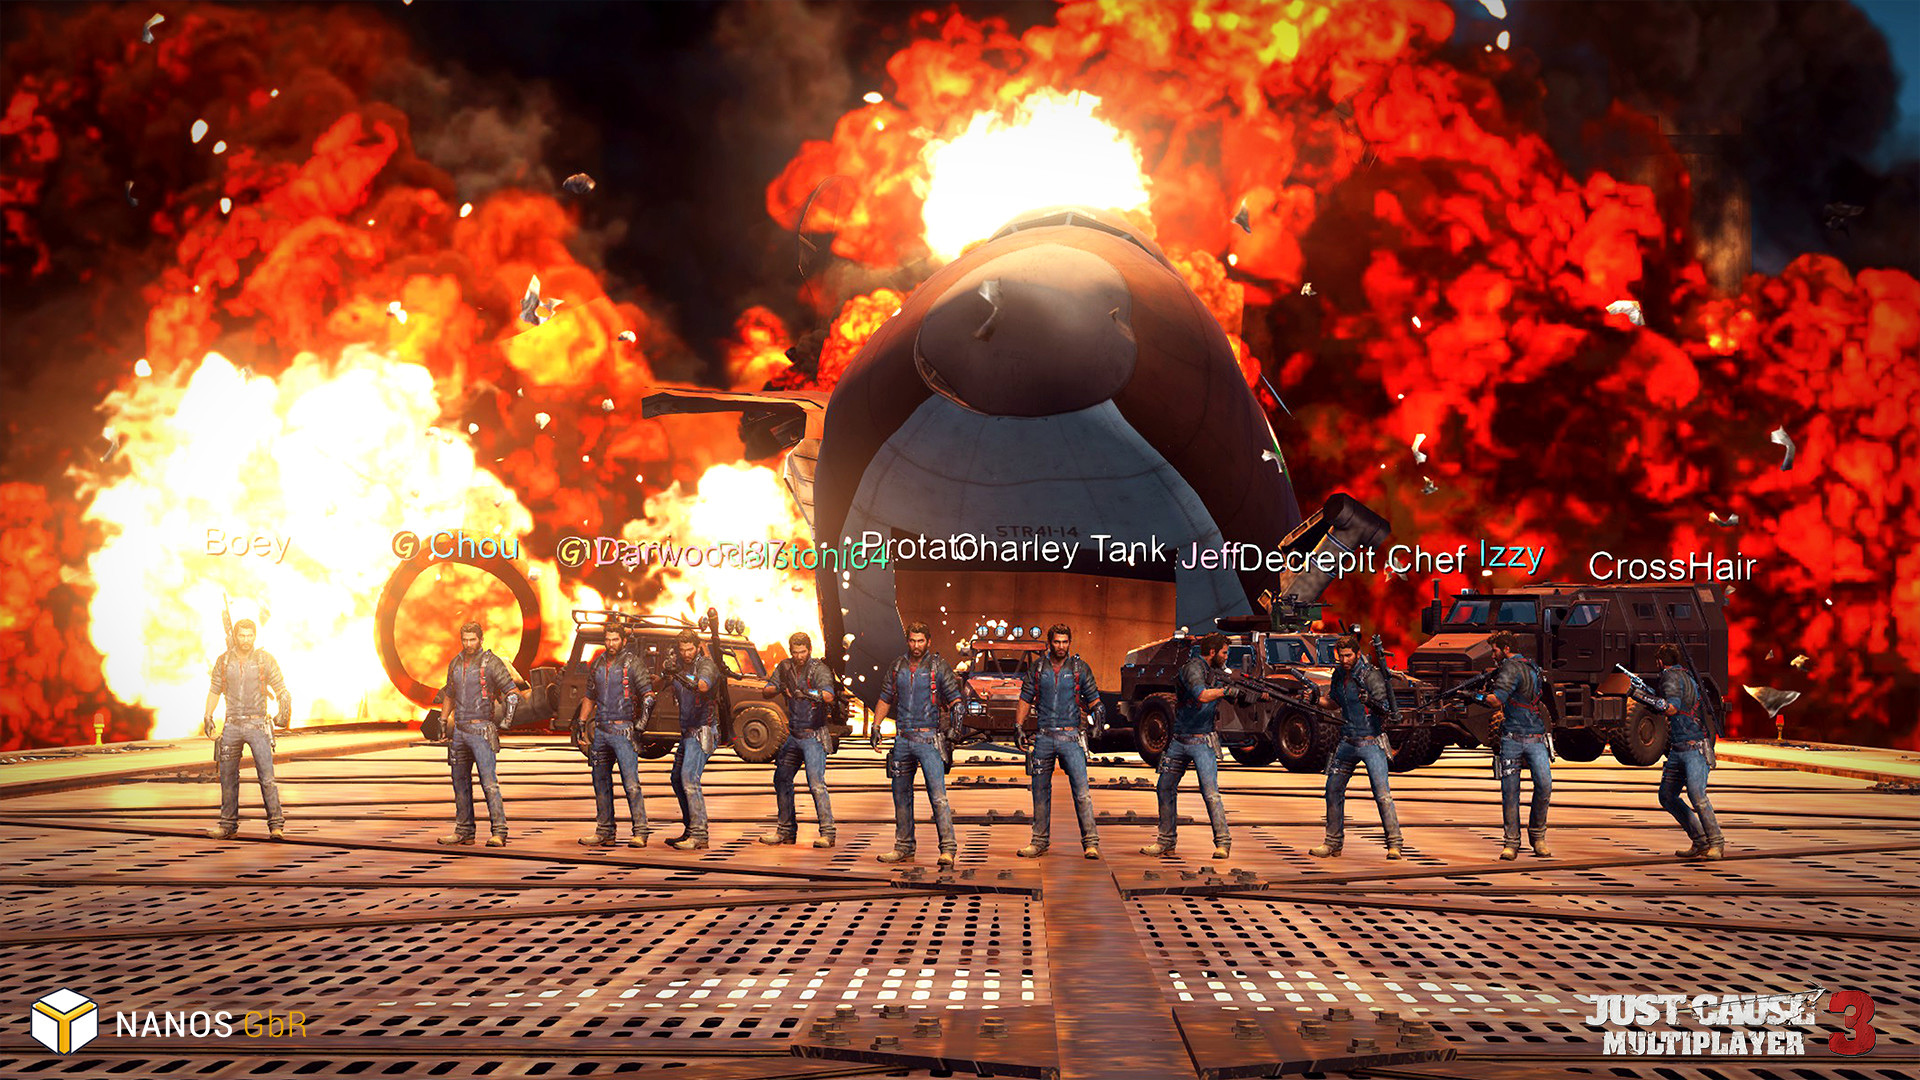 Disponible el Mod Multijugador de Just Cause 3 para PC